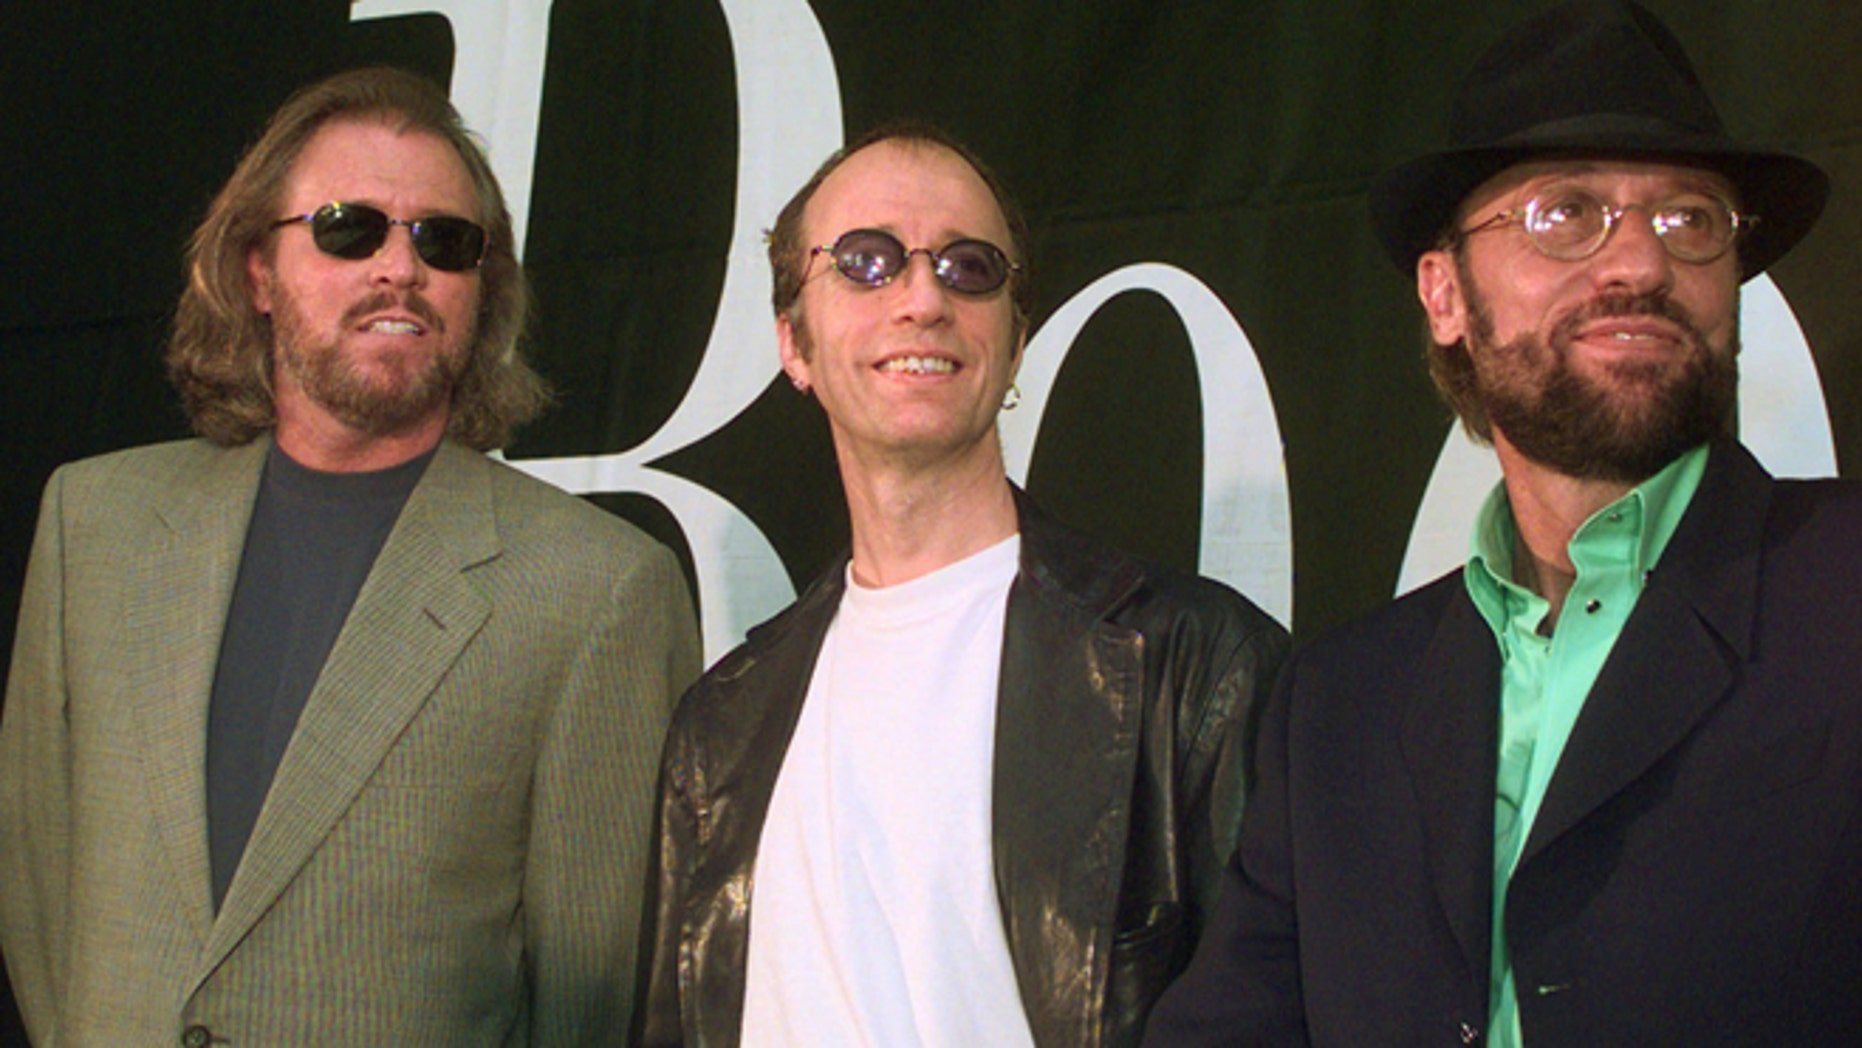 The Bee Gees will be honored with a tribute concert two days after the Grammys.